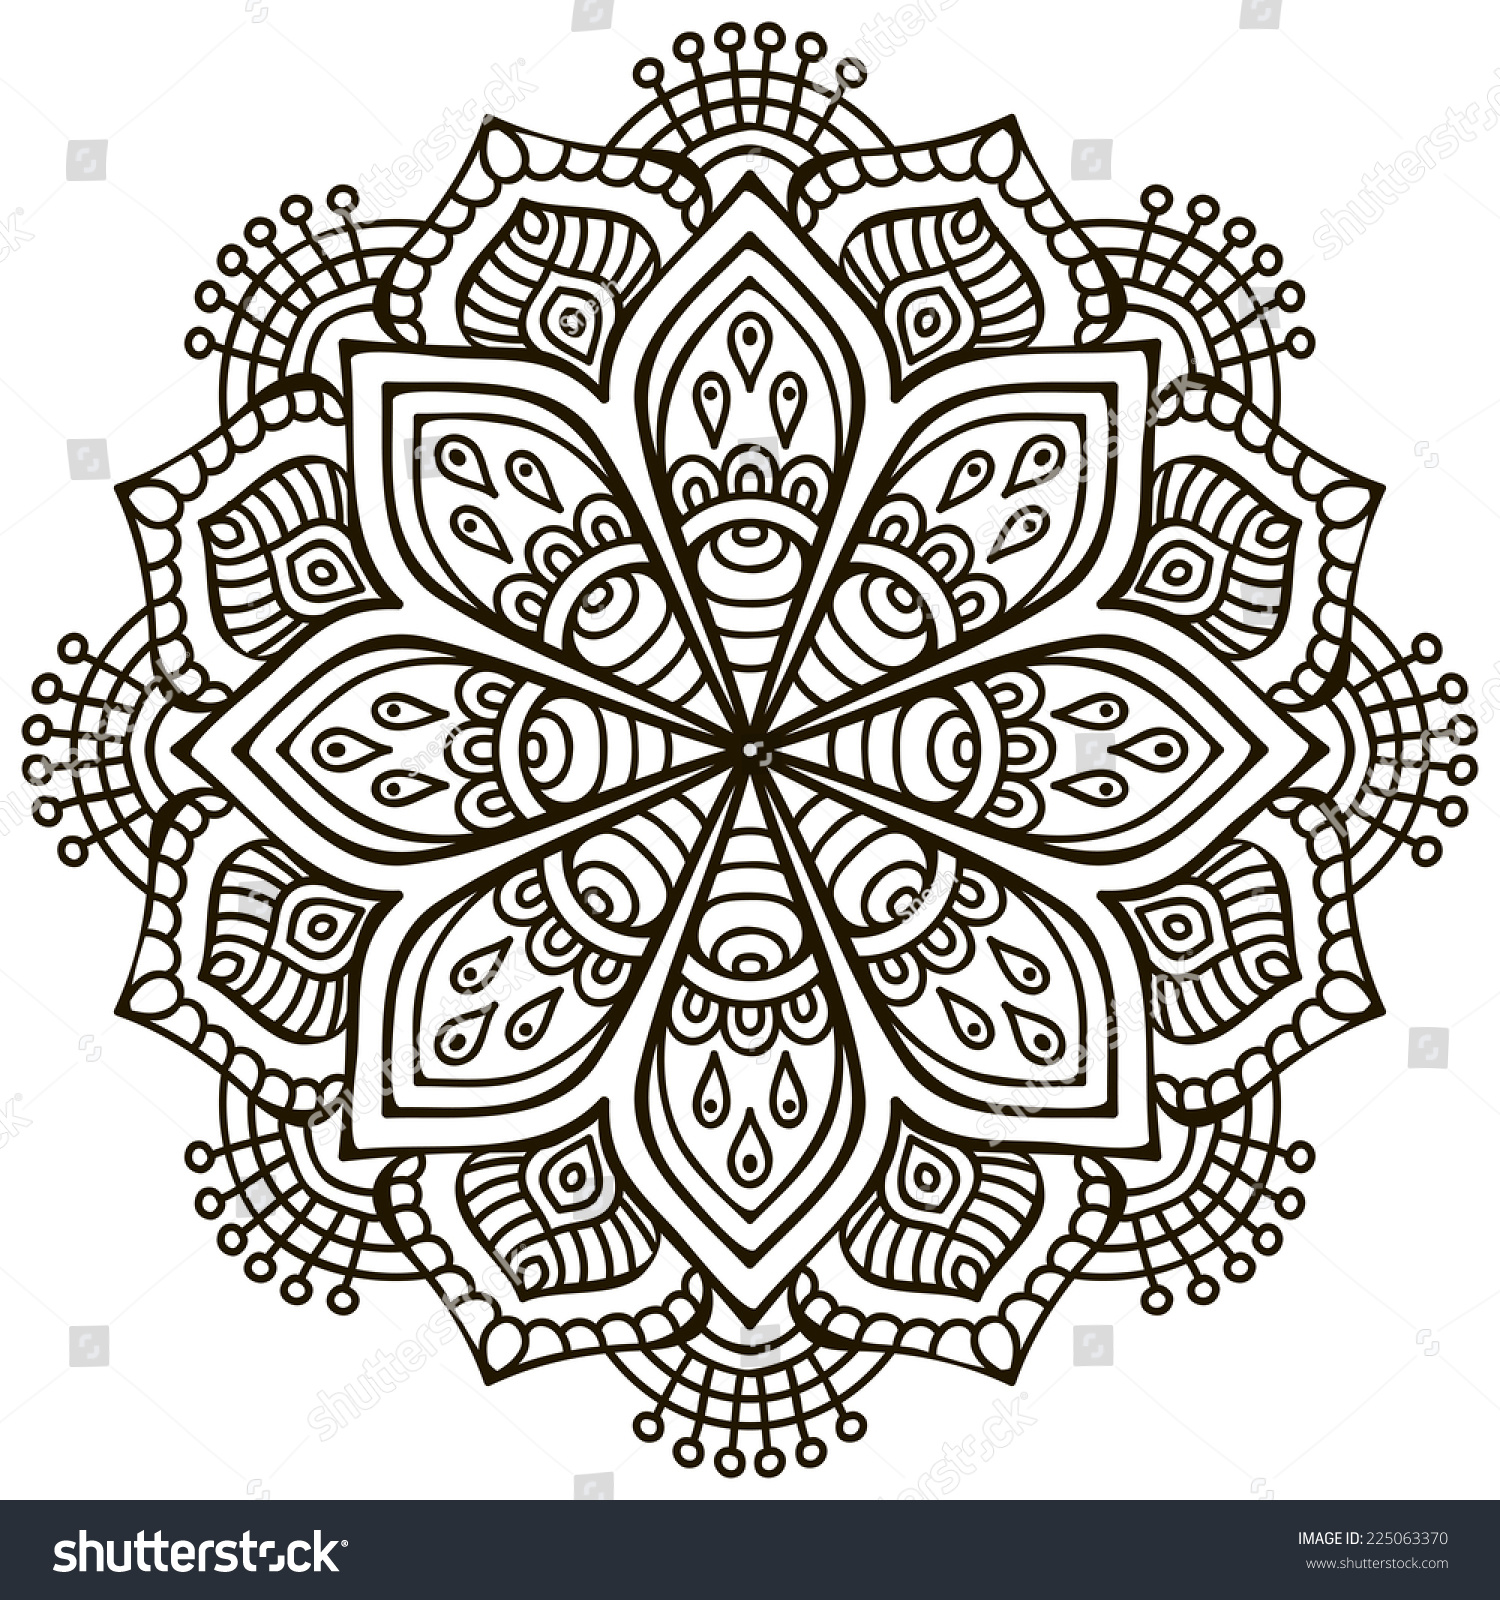 stock vector mandala round ornament pattern vintage decorative elements hand drawn background islam arabic 225063370